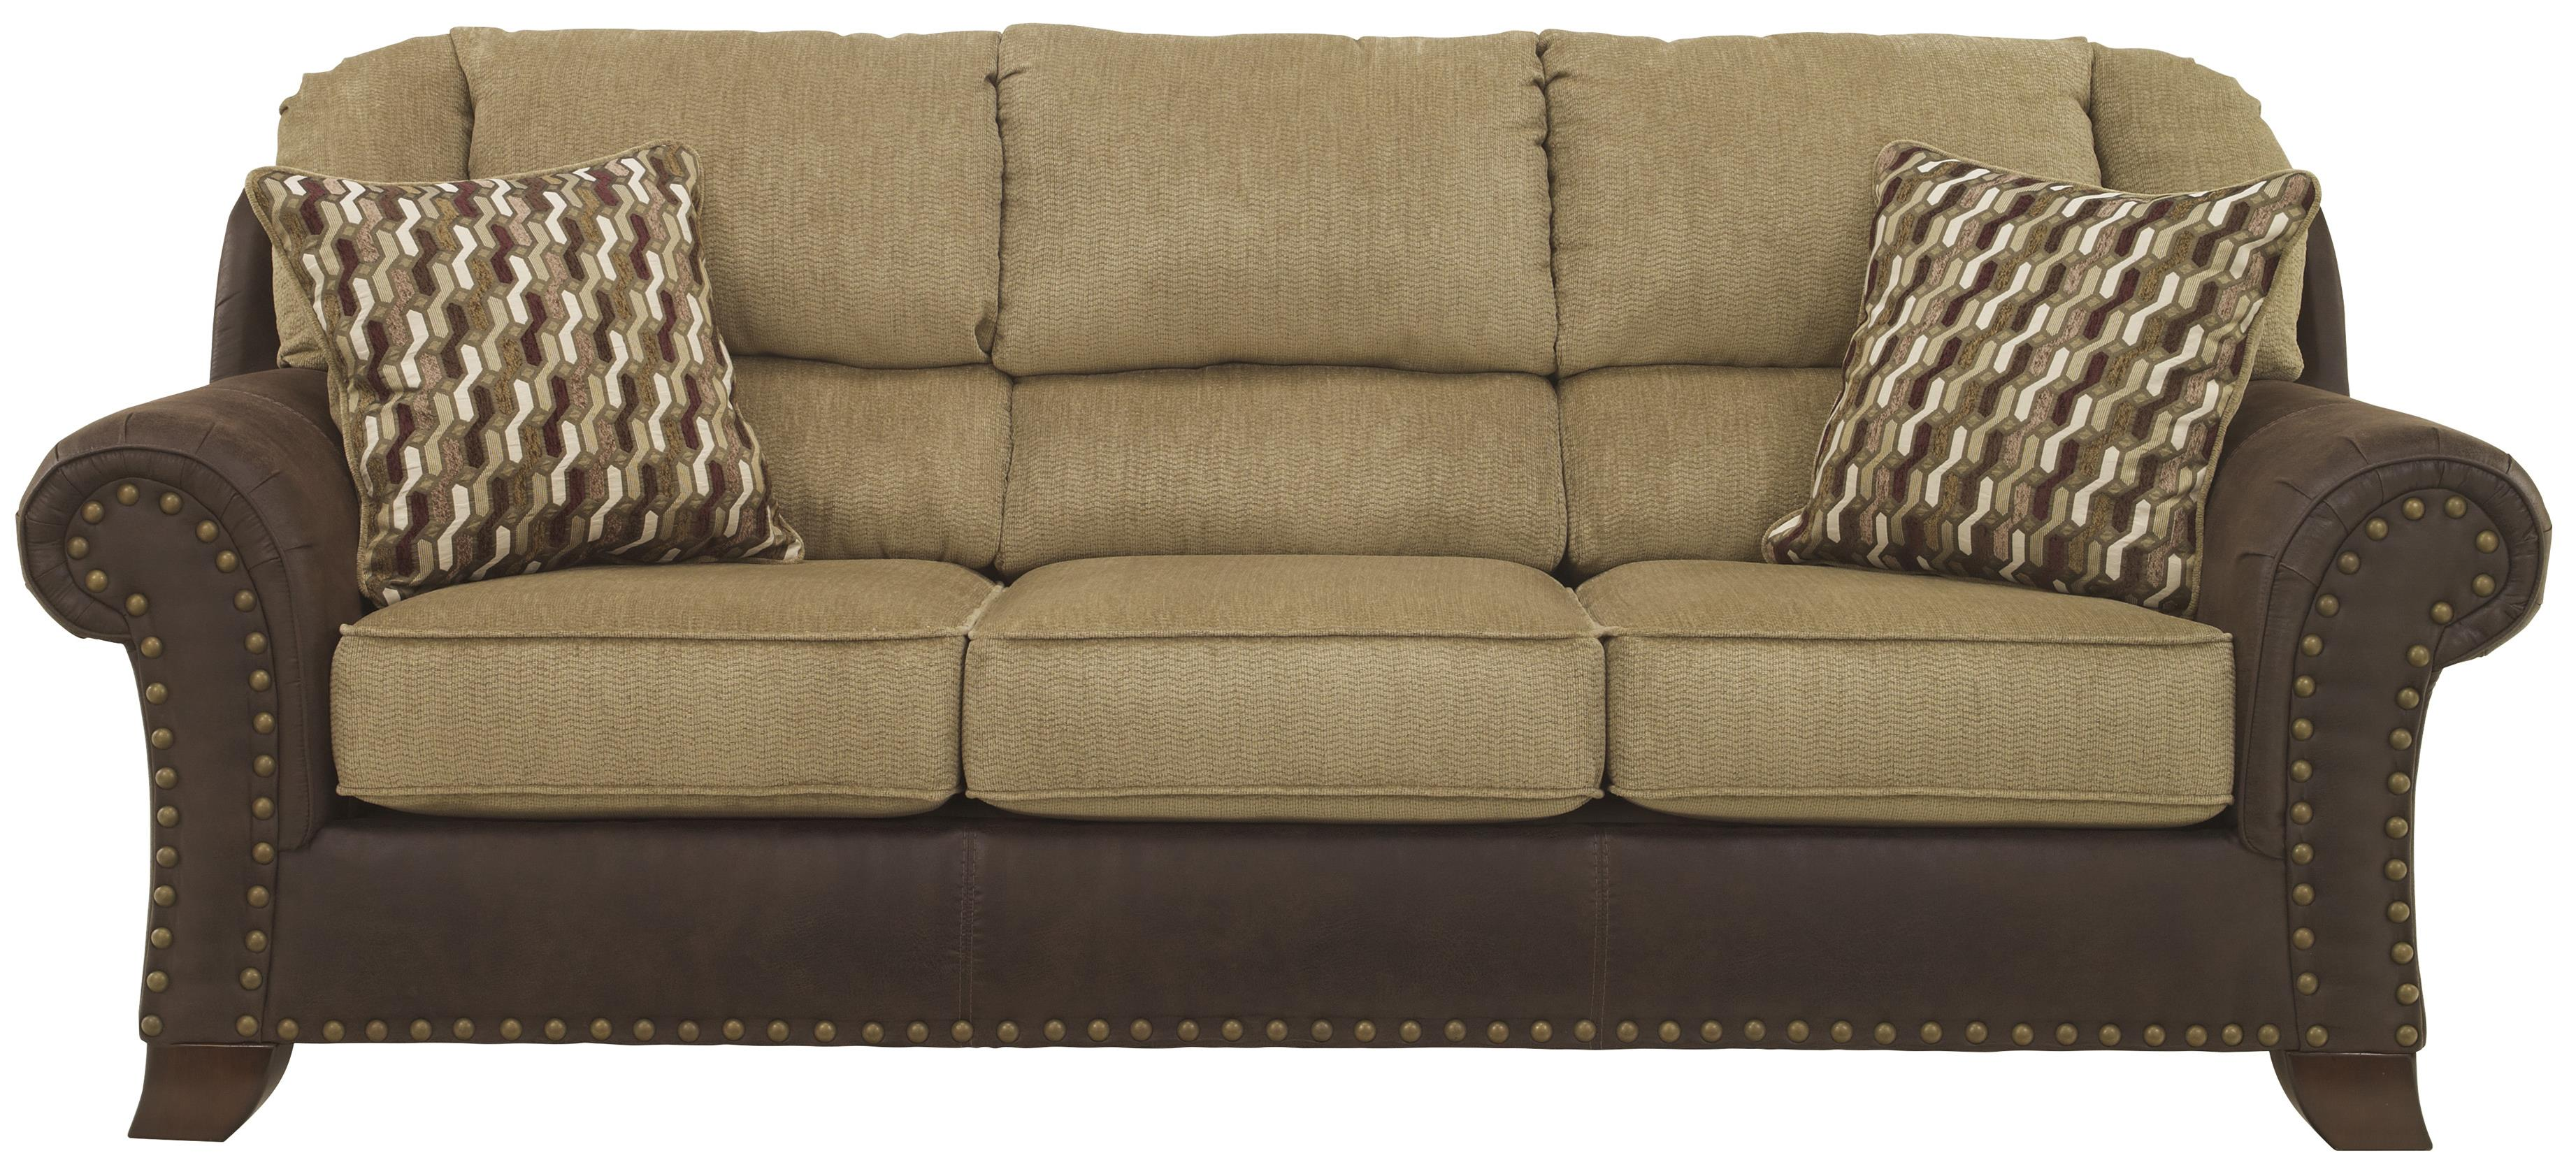 leather and chenille sofa accent two tone with fabric faux upholstery by